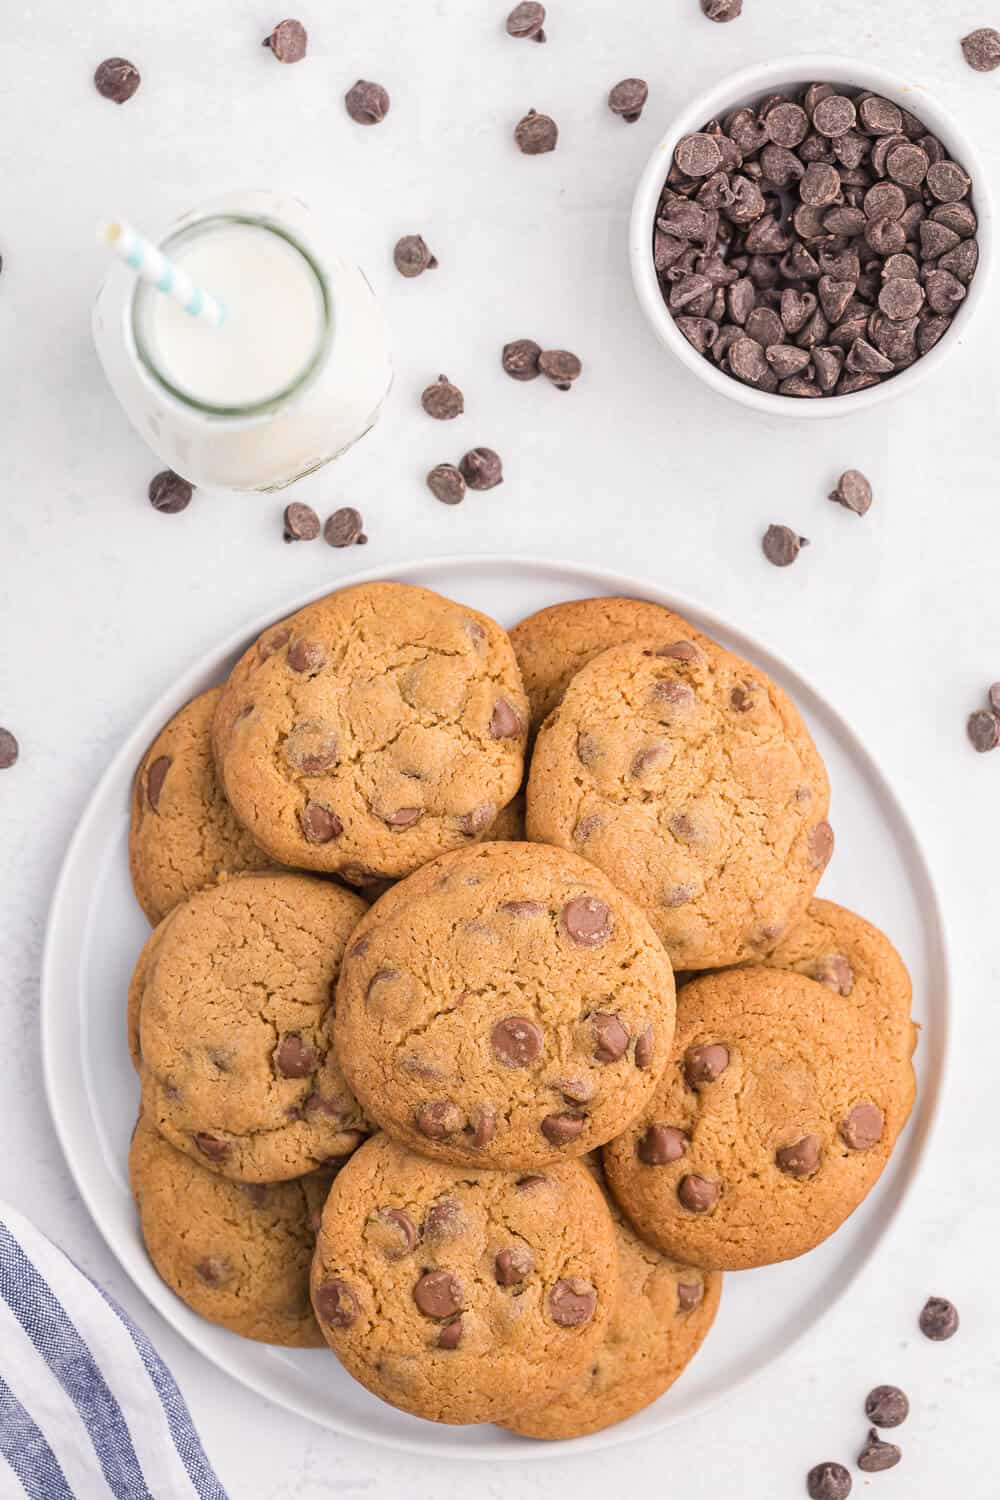 Chocolate cookies on a white plate with a glass of milk